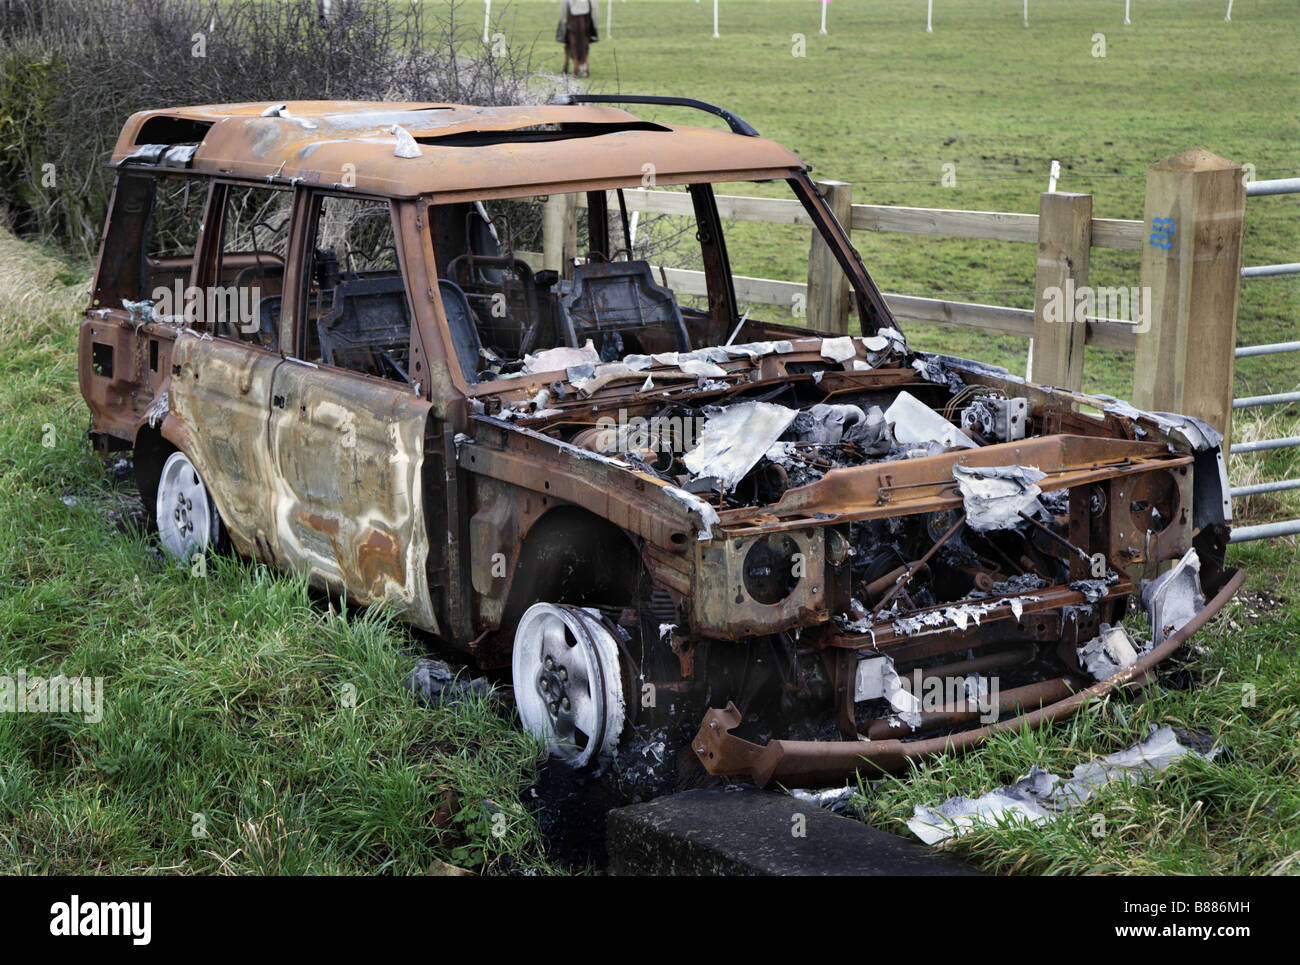 Burnt-out motor vehicle - Stock Image